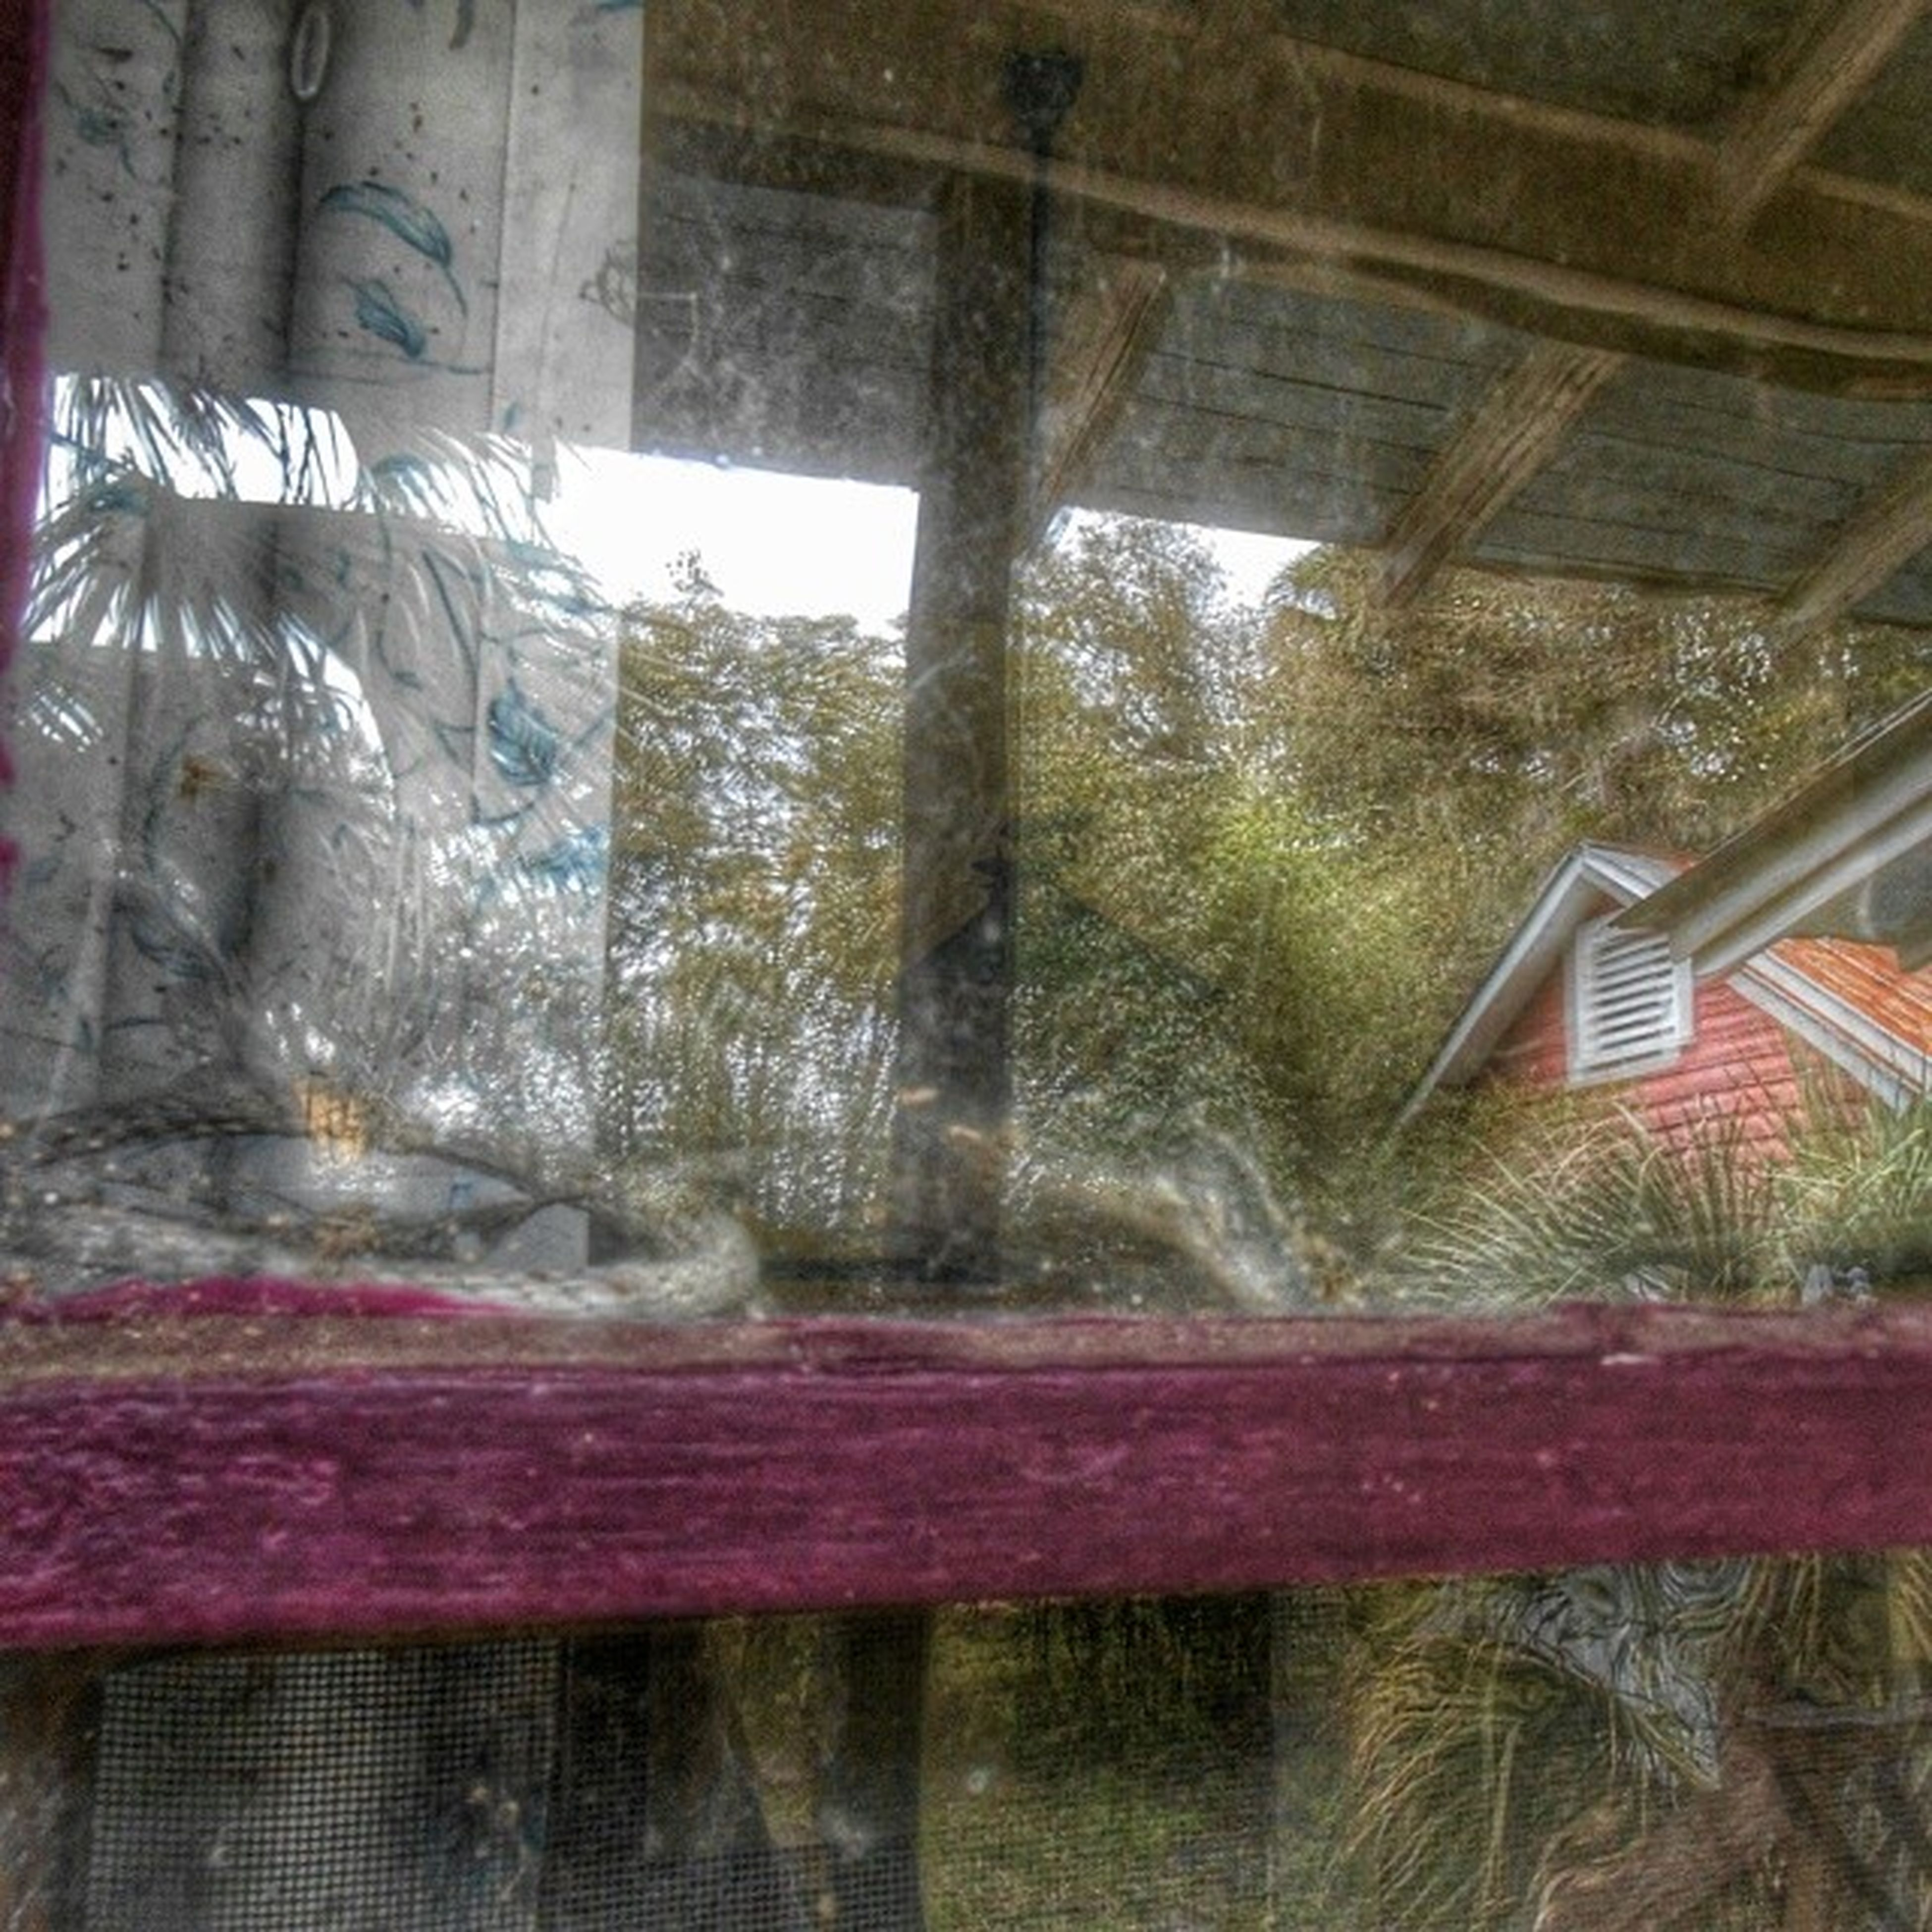 indoors, window, curtain, interior, glass - material, architecture, built structure, transparent, ceiling, home interior, messy, abandoned, wall - building feature, damaged, graffiti, day, house, no people, obsolete, reflection